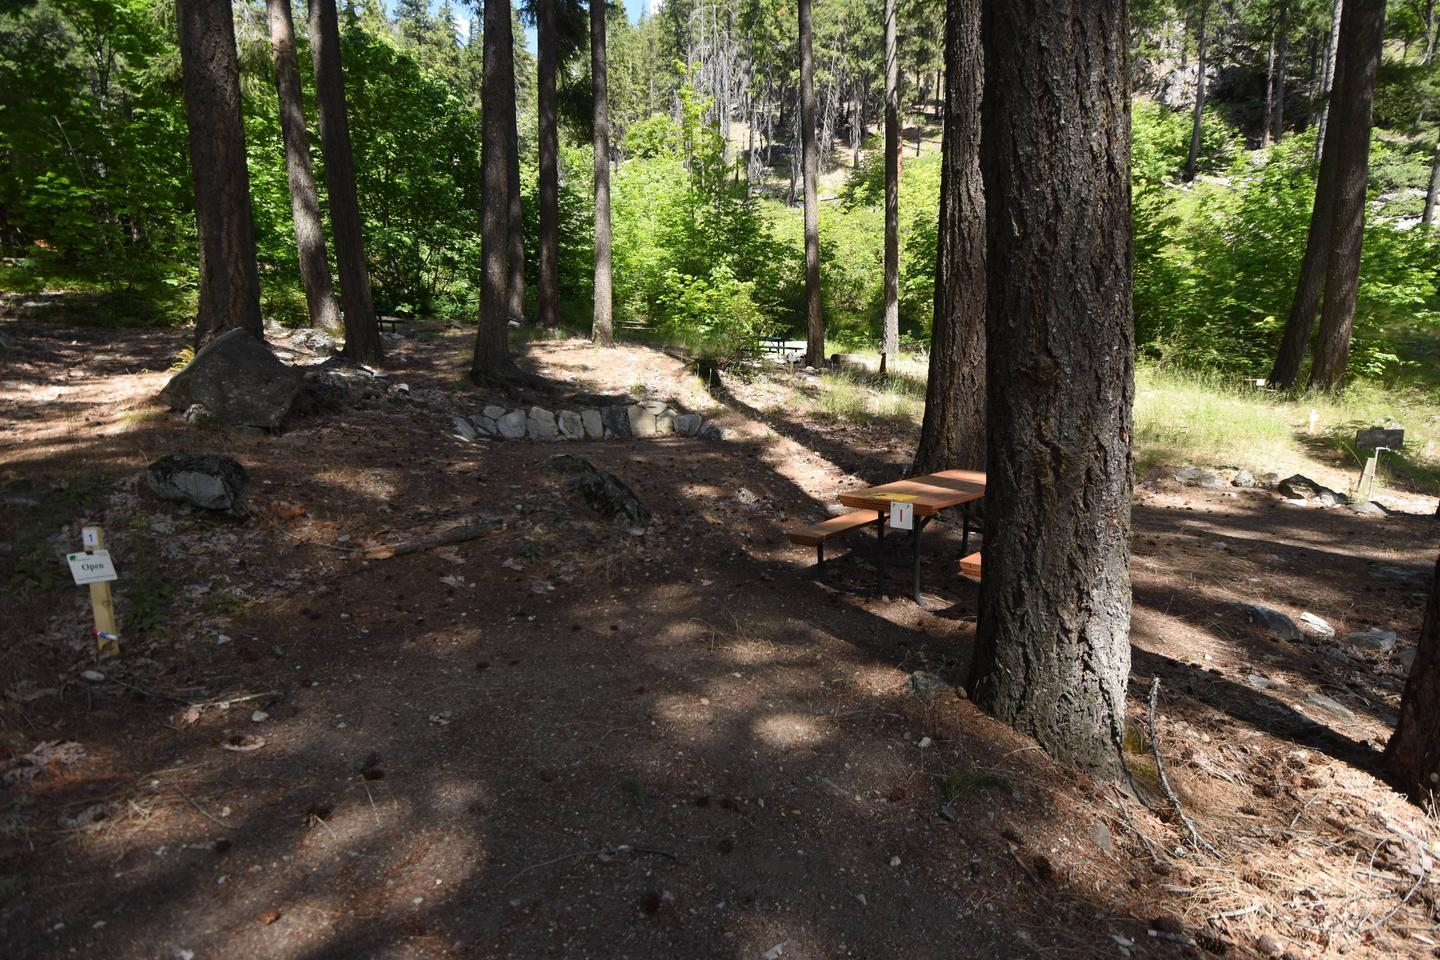 View of campsite with picnic table and tent pads.Lakeview Campsite 1